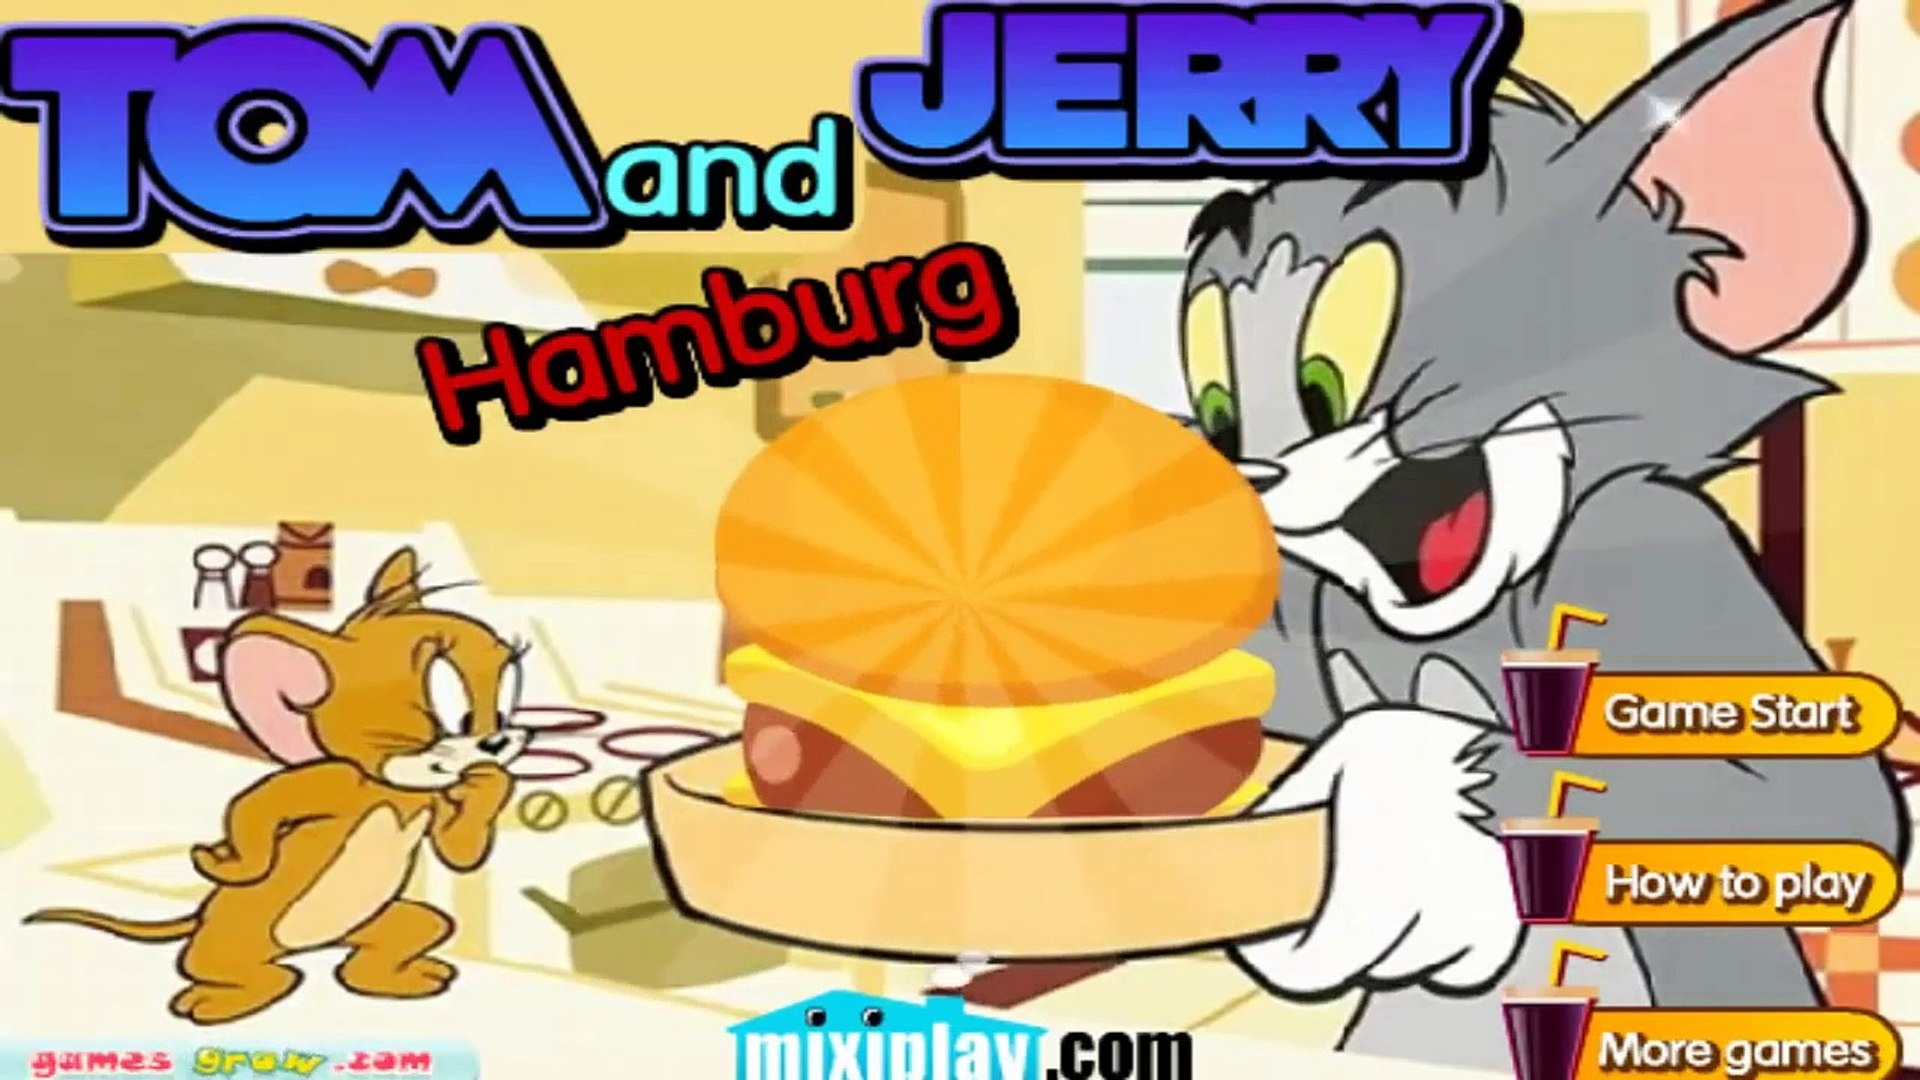 Tom and Jerry cooking hamburger games